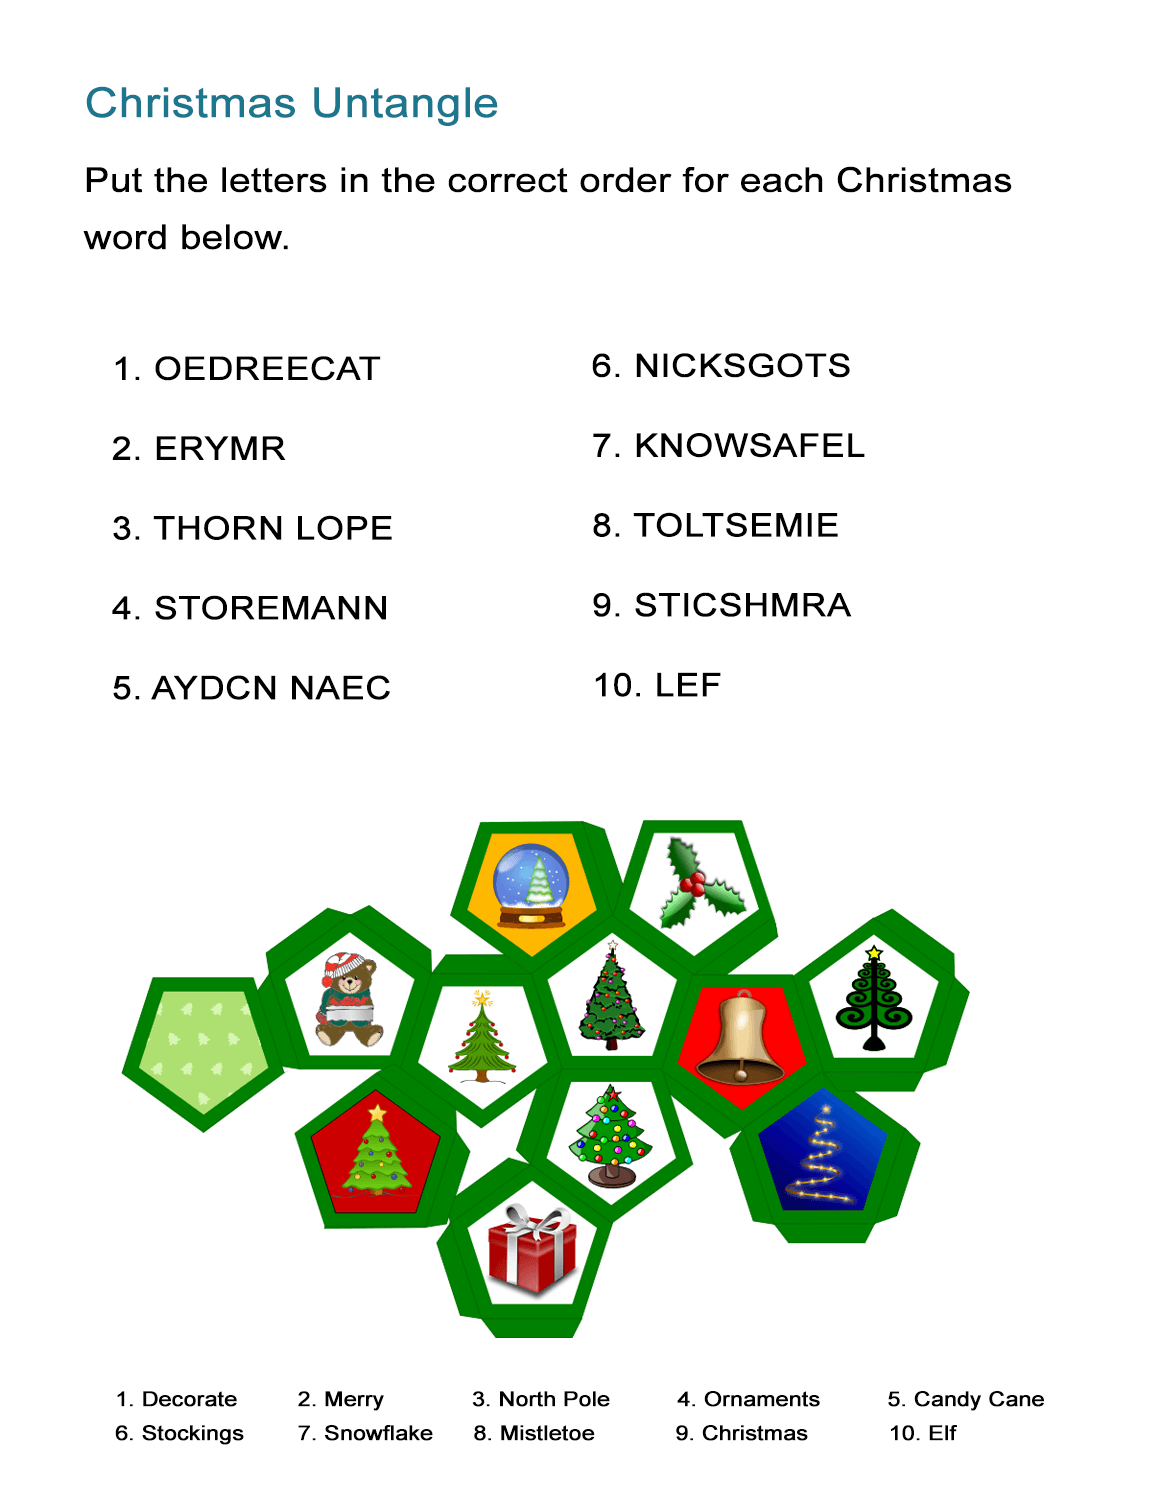 Christmas Vocabulary Untangle: Reorder Letters and Decipher